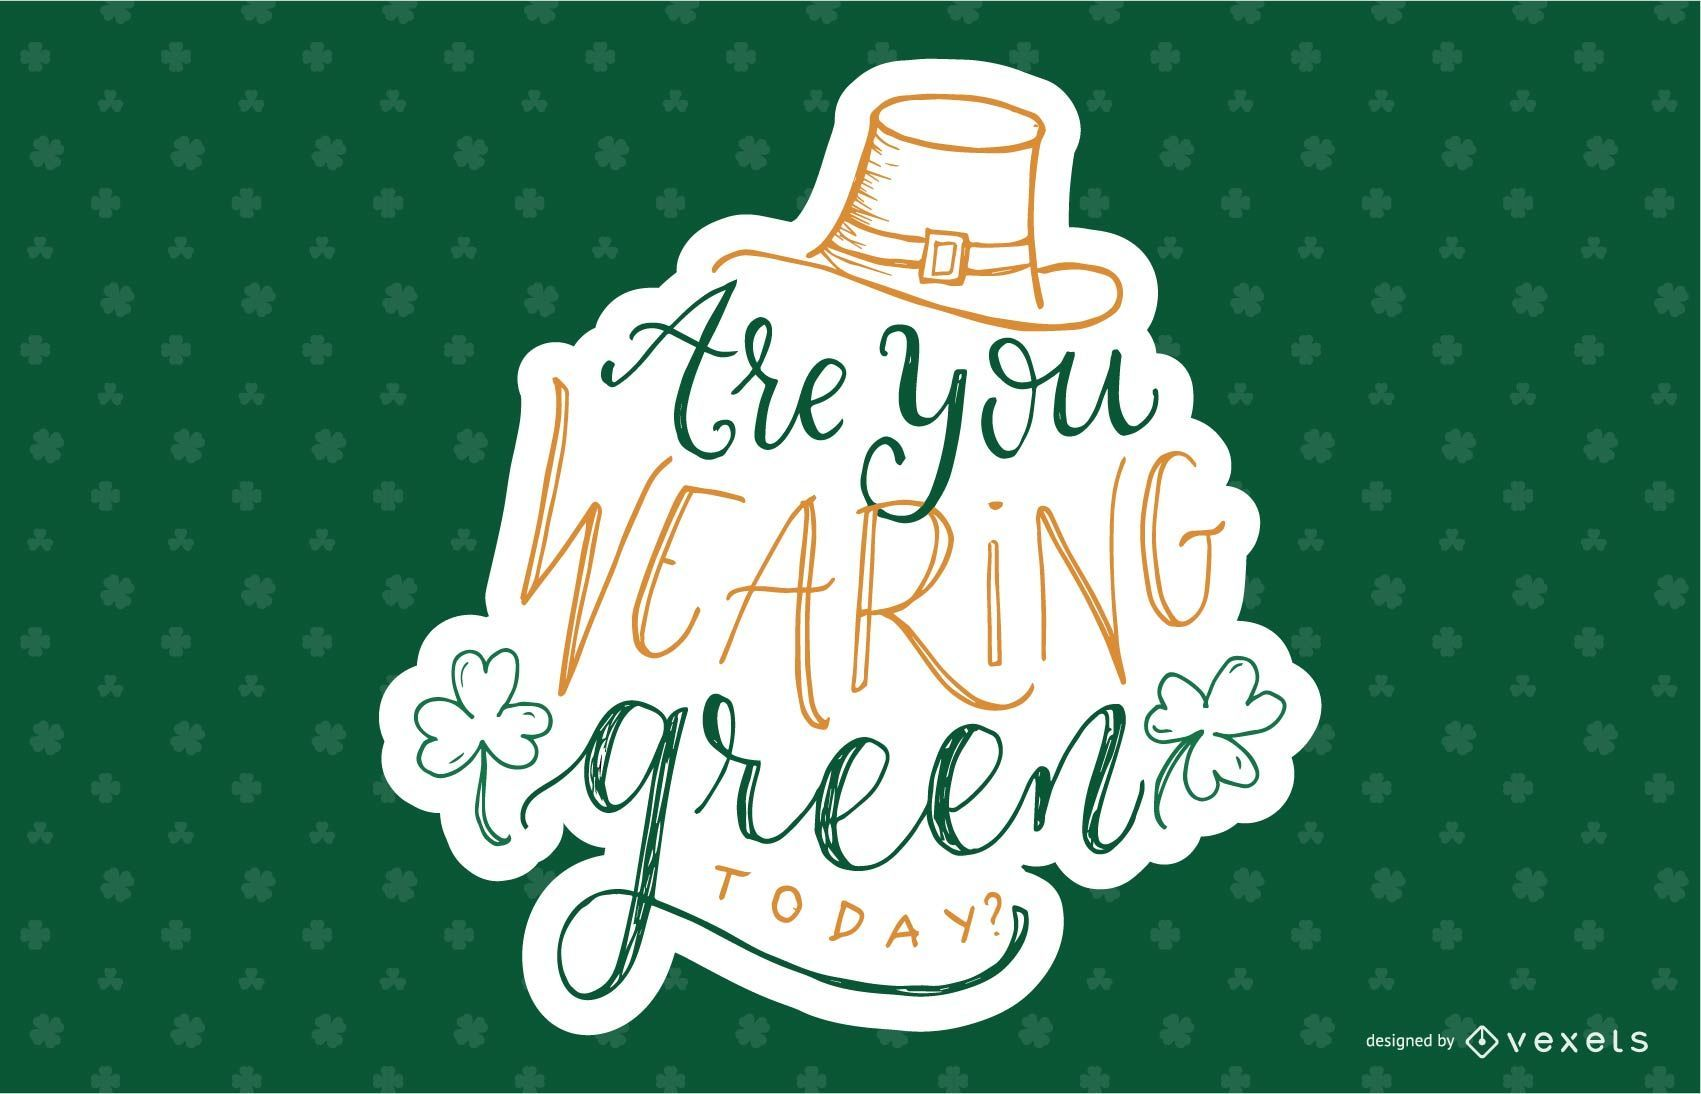 Are you wearing green lettering